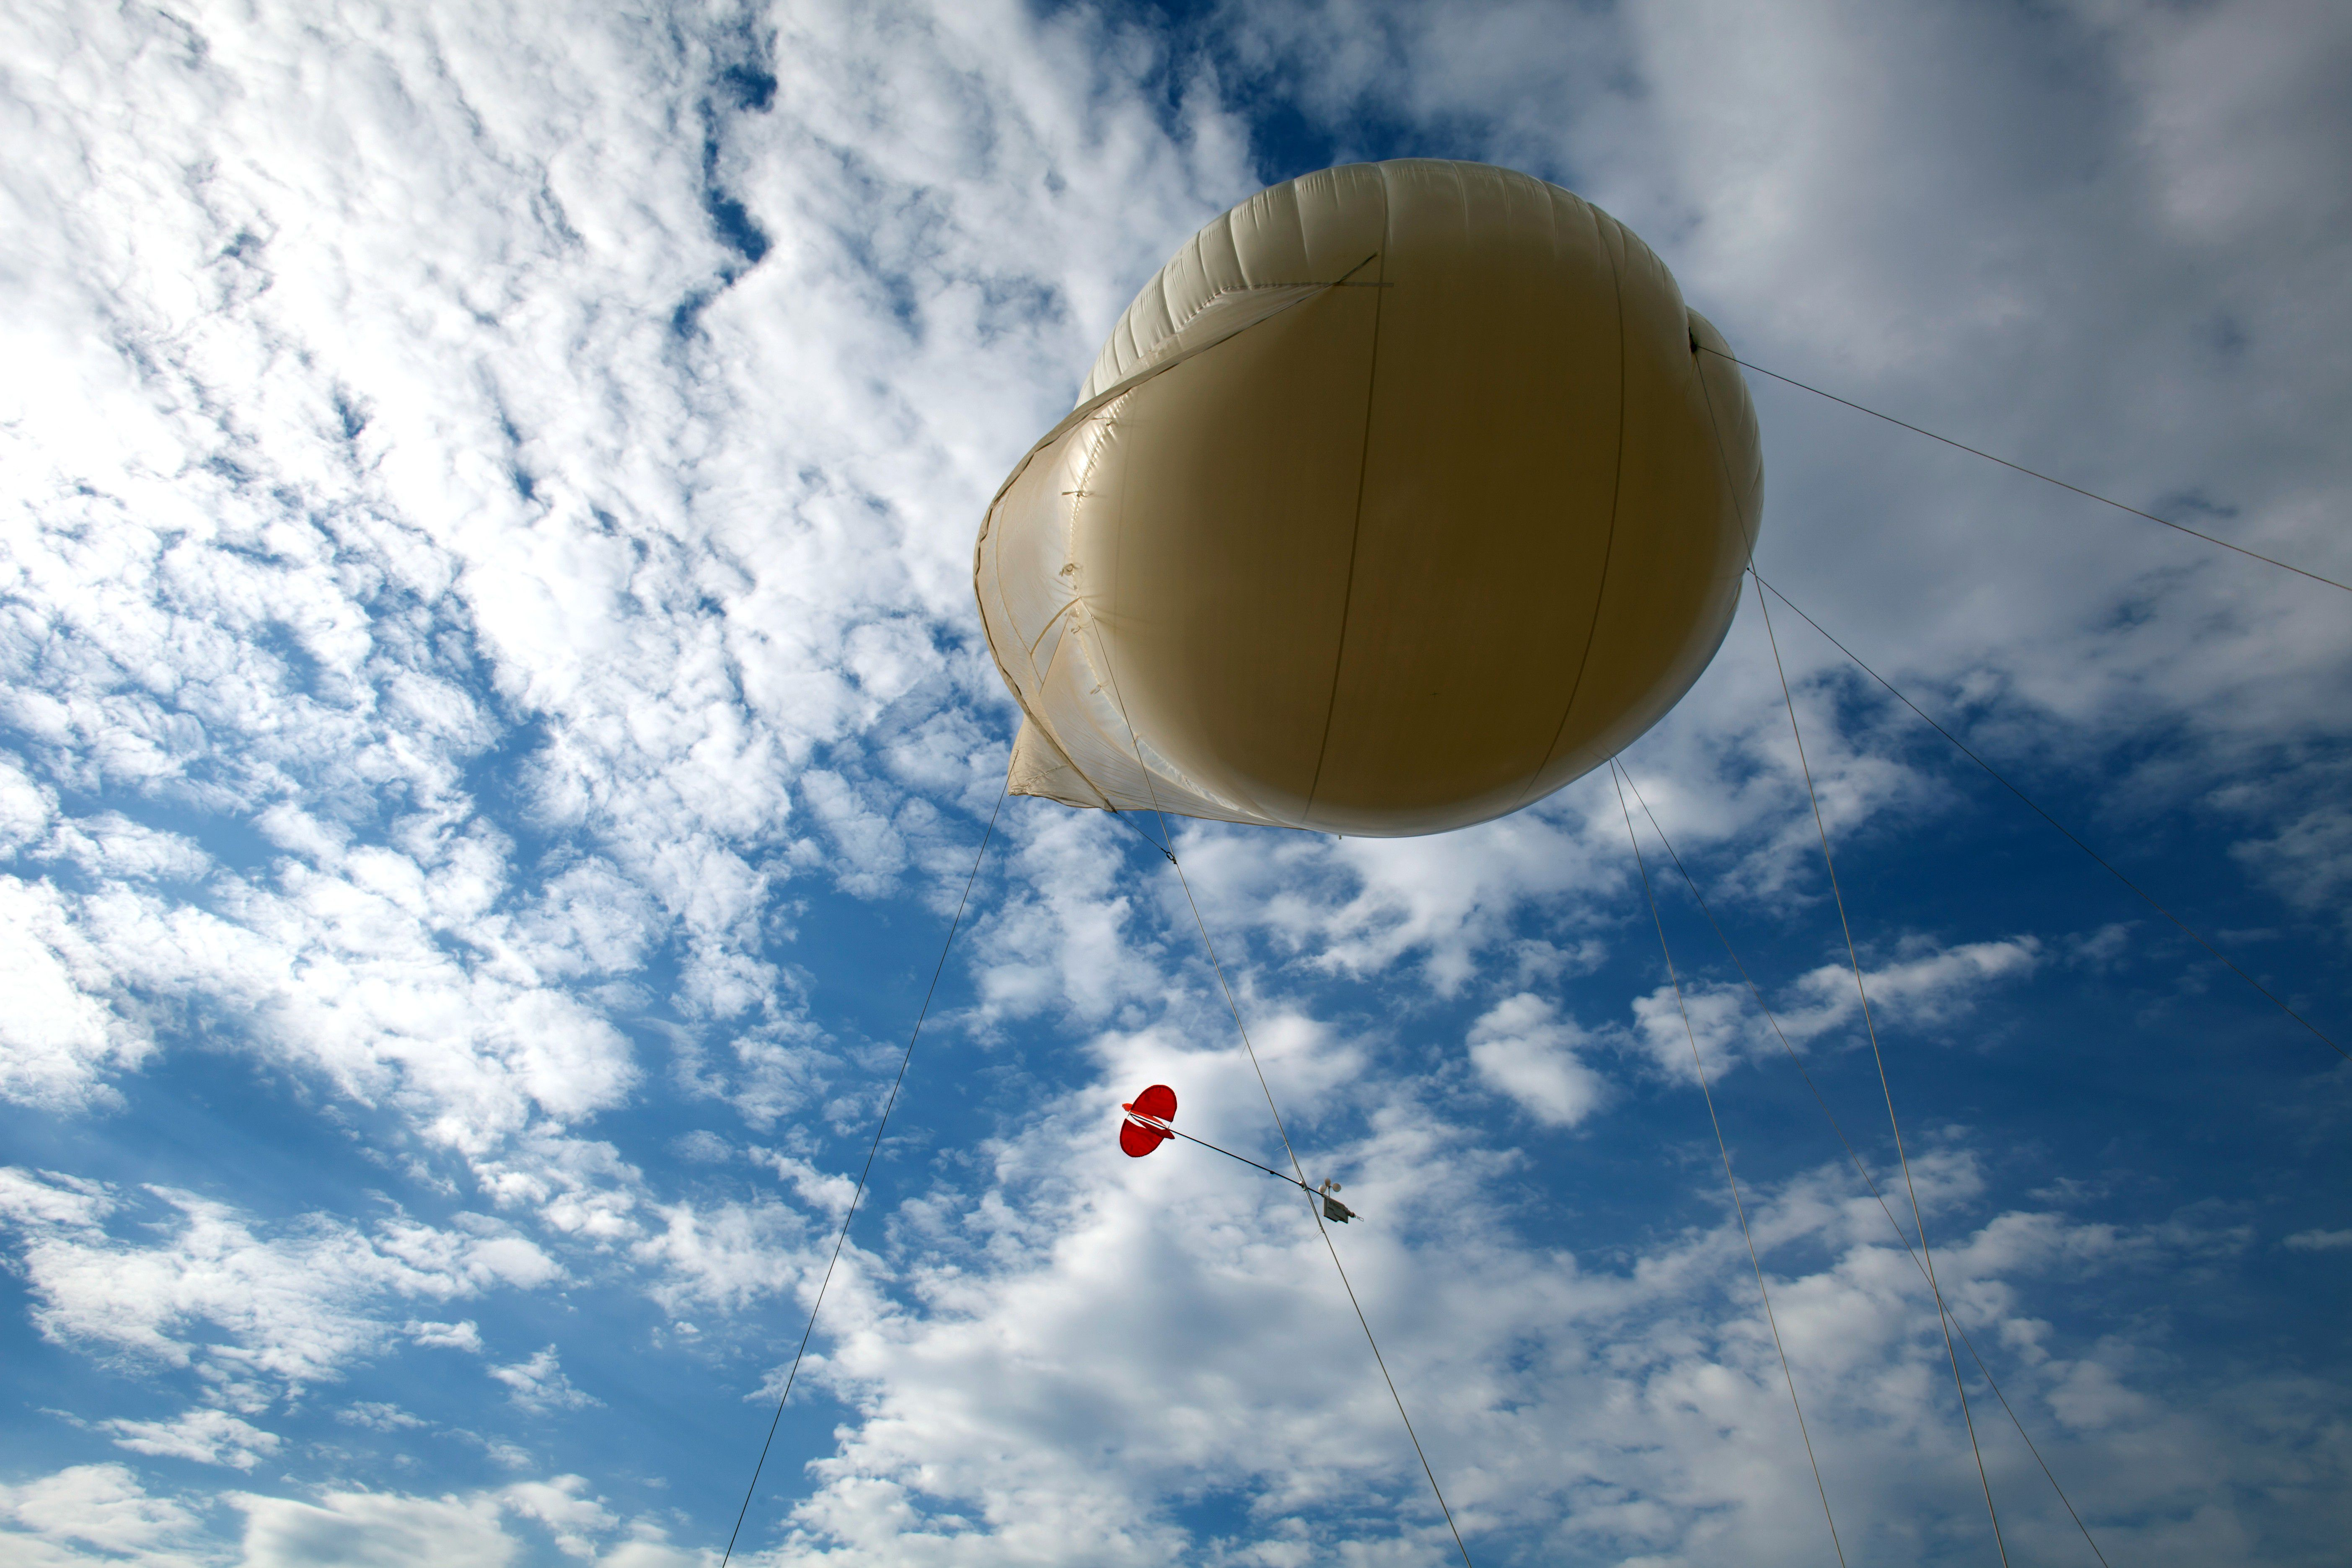 A tethered weather balloon for testing national air quality slowly rises into the sky